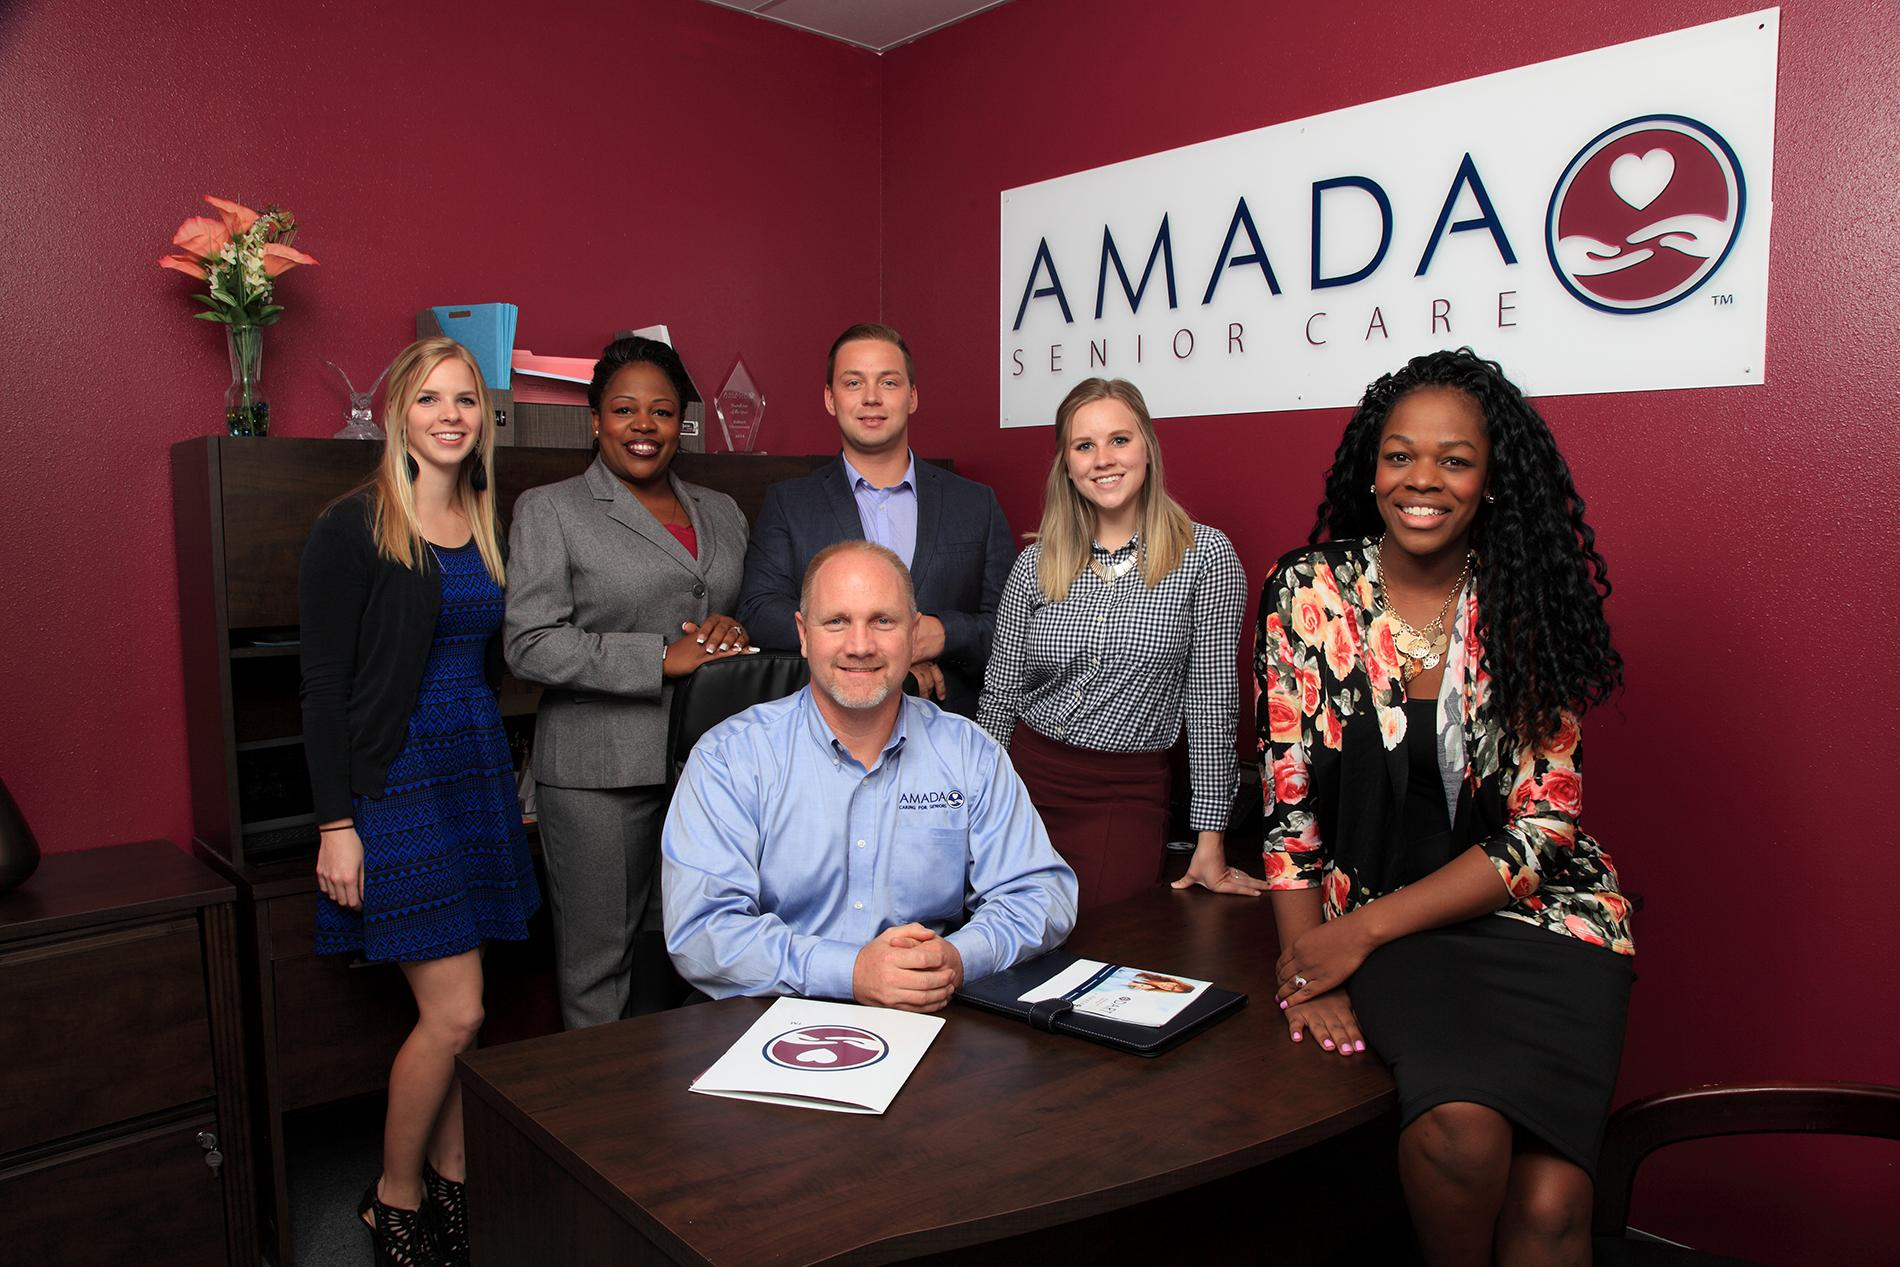 Amada Senior Care image 1